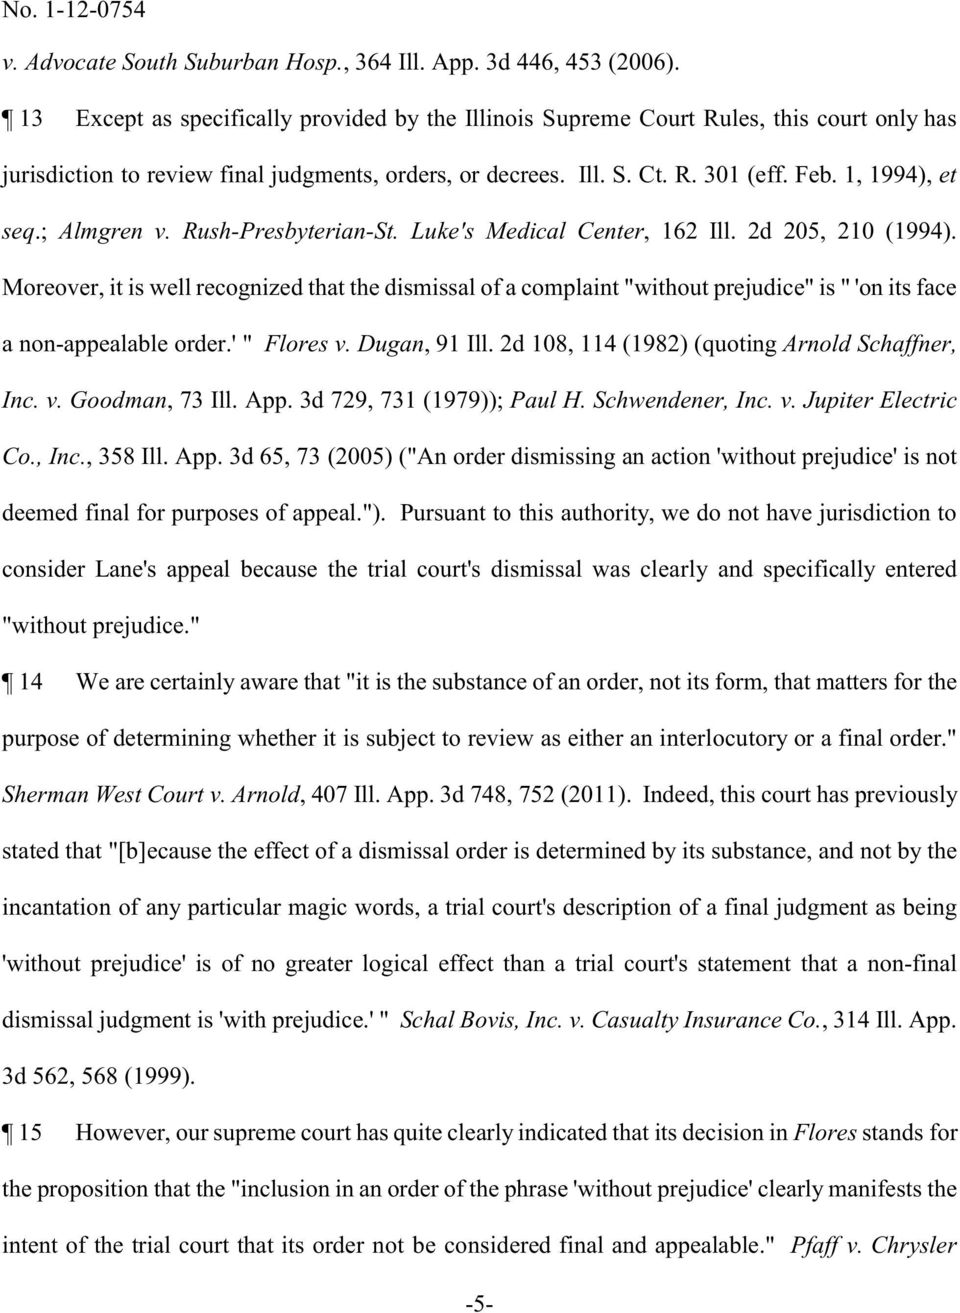 ; Almgren v. Rush-Presbyterian-St. Luke's Medical Center, 162 Ill. 2d 205, 210 (1994).